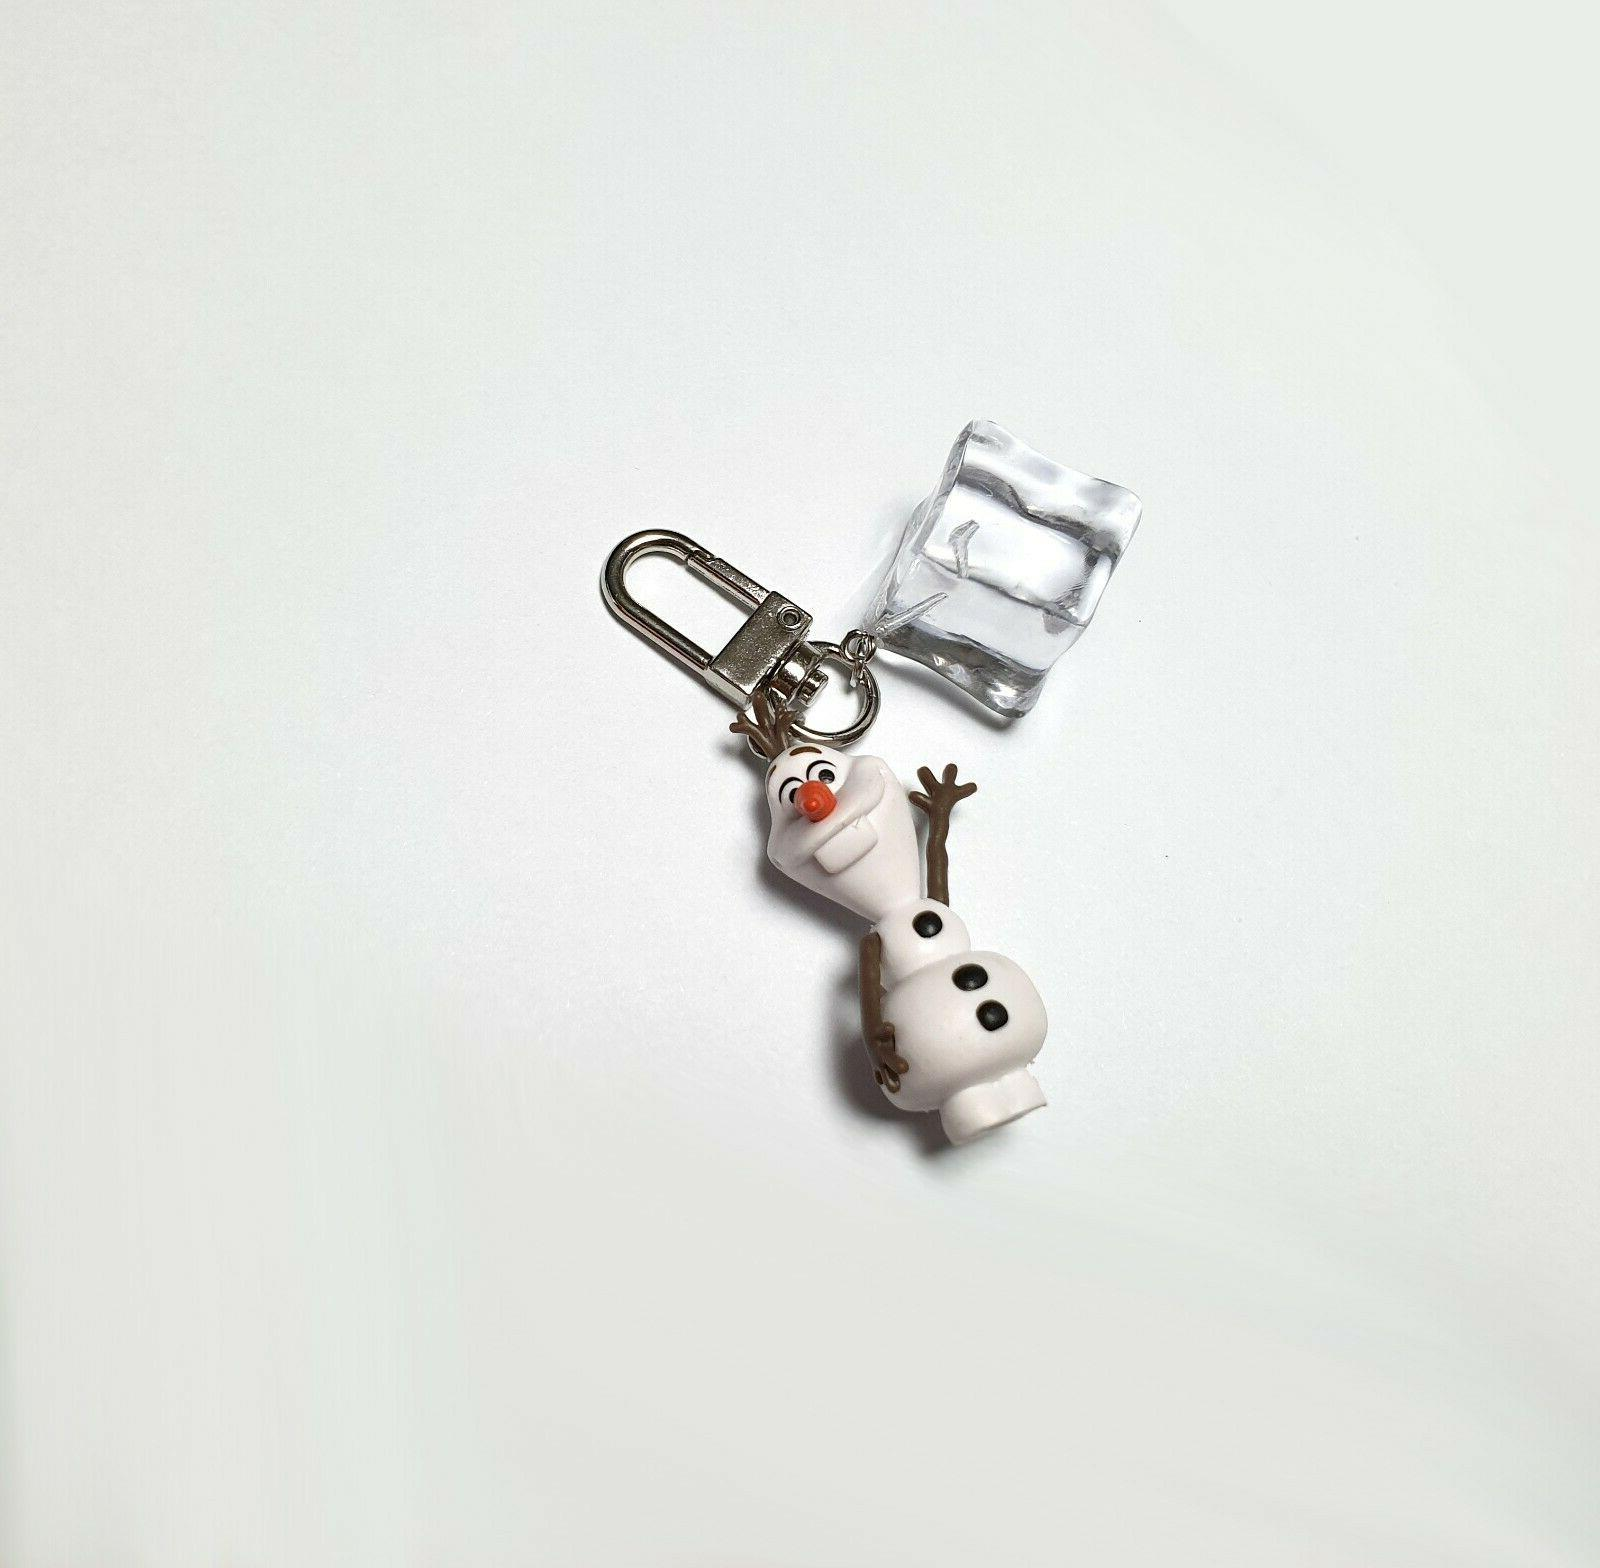 frozen 2 key chain and car key